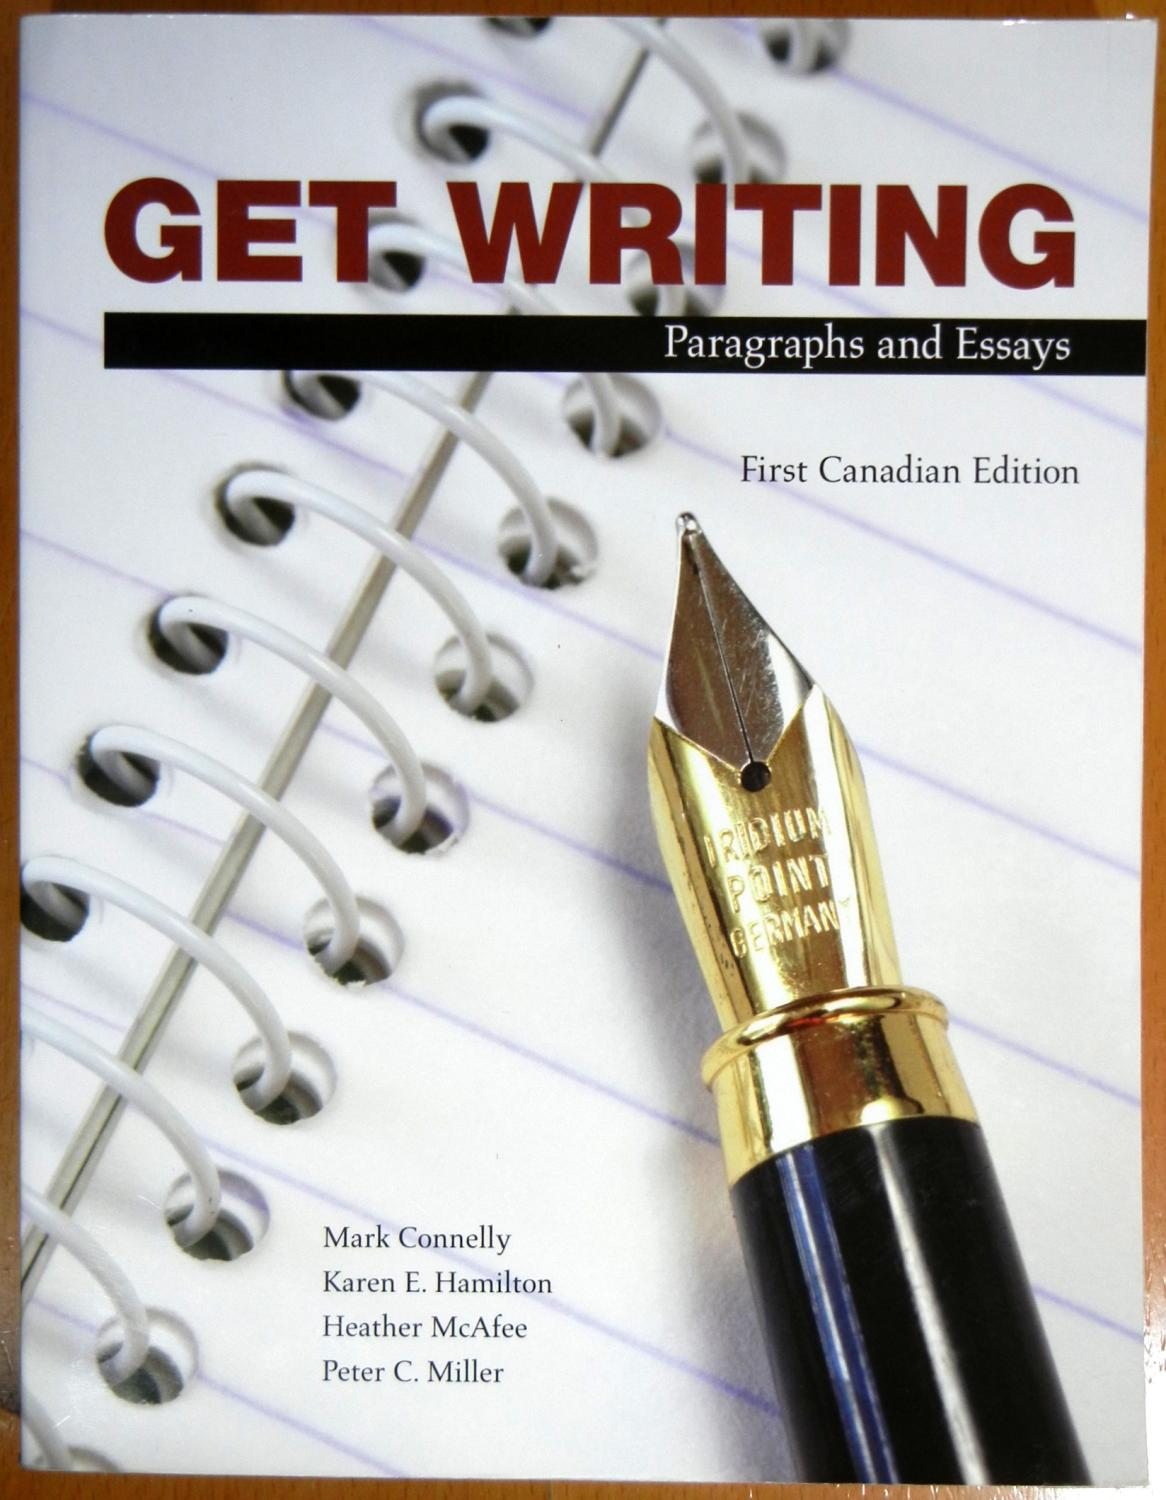 writing paragraphs and essays edition For courses in writing skills for writing–process and strategy writing for life: paragraphs and essays is part of a two-book series that helps students understand the importance of strong writing skills and motivates them to become better writers.